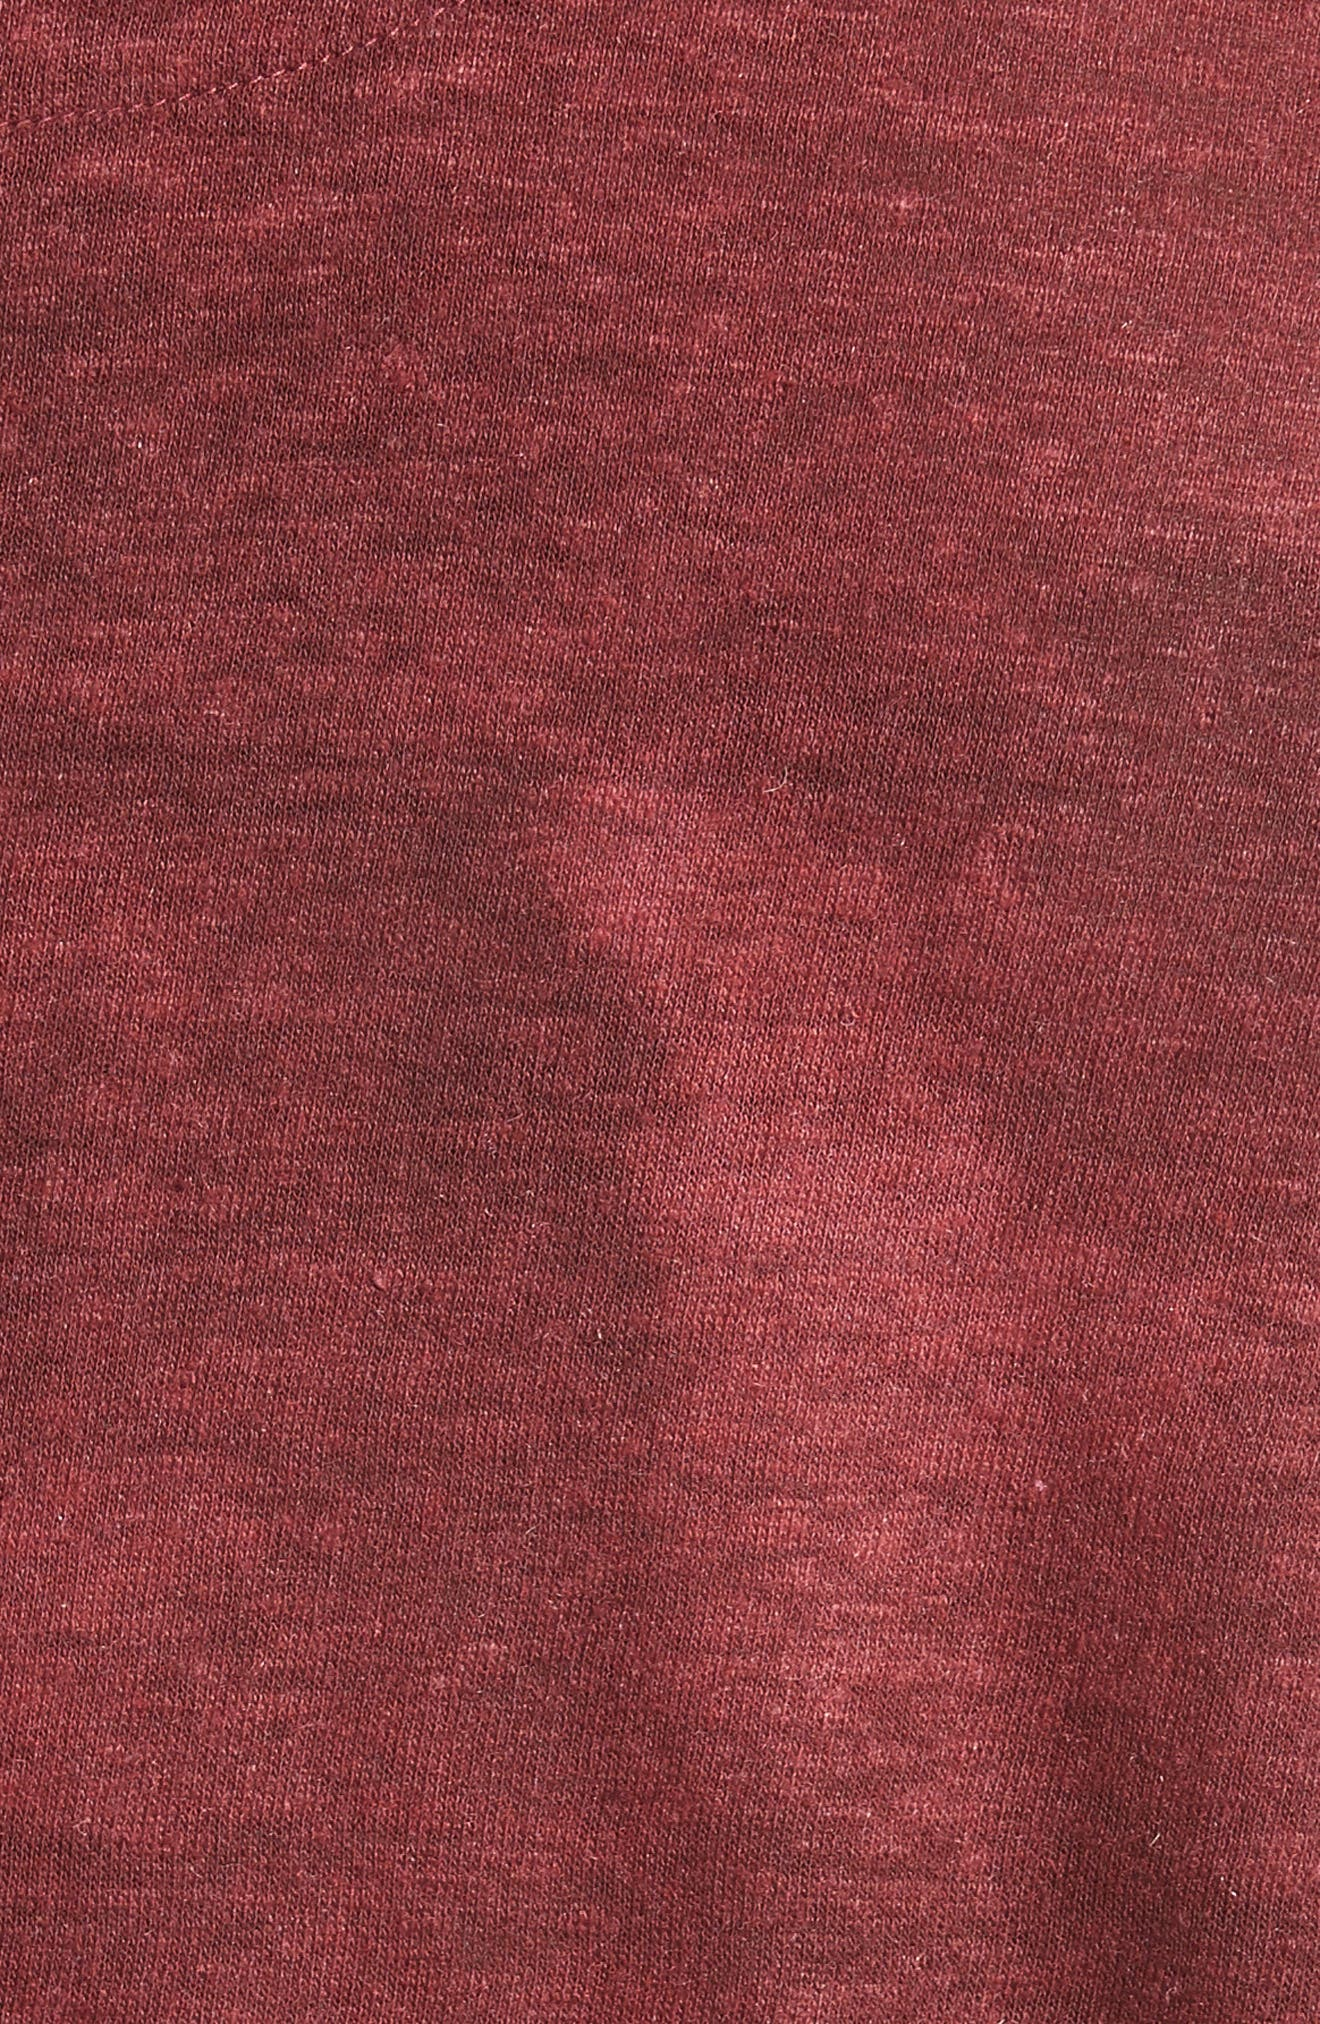 Linen Blend T-Shirt,                             Alternate thumbnail 5, color,                             Red Clay